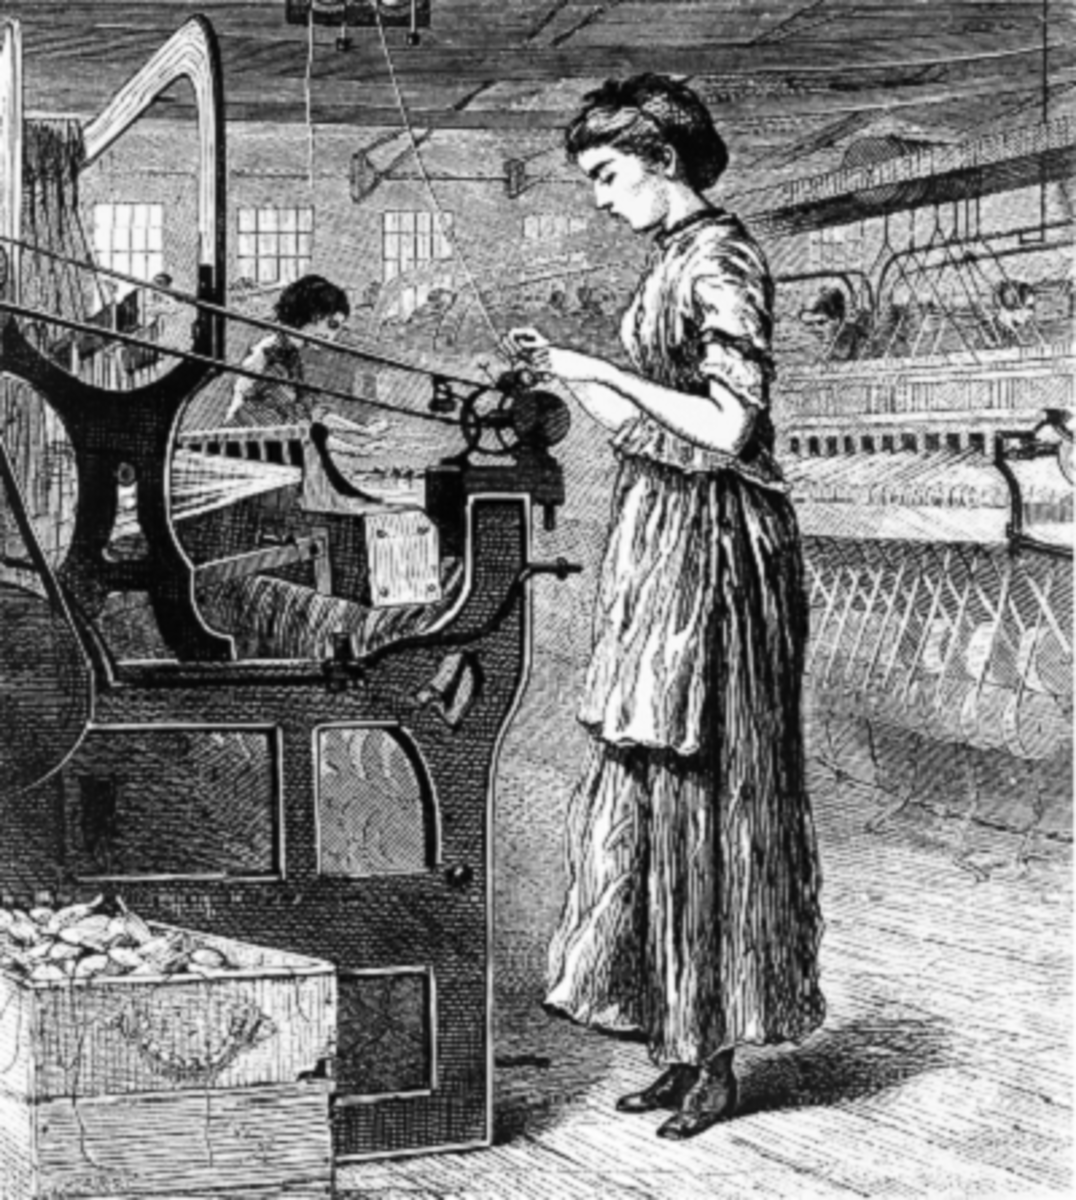 Labour in the Lowell Cotton Mills